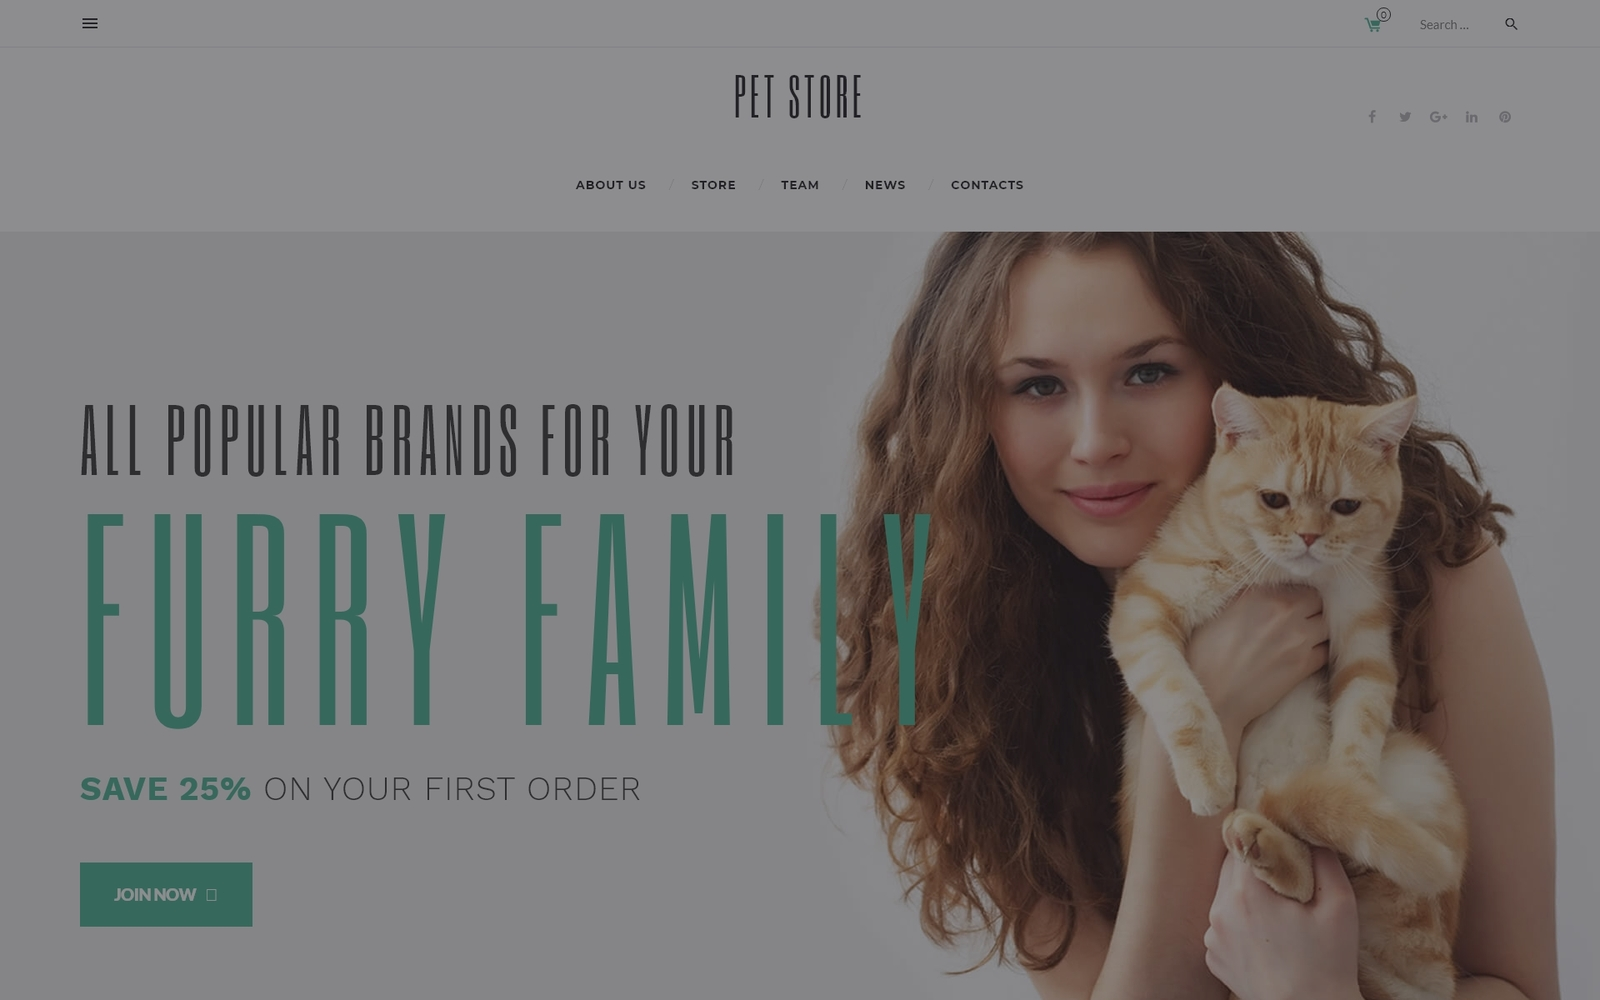 Responsive PetStore - Pets Supplies Shop Responsive WooCommerce Theme #58660